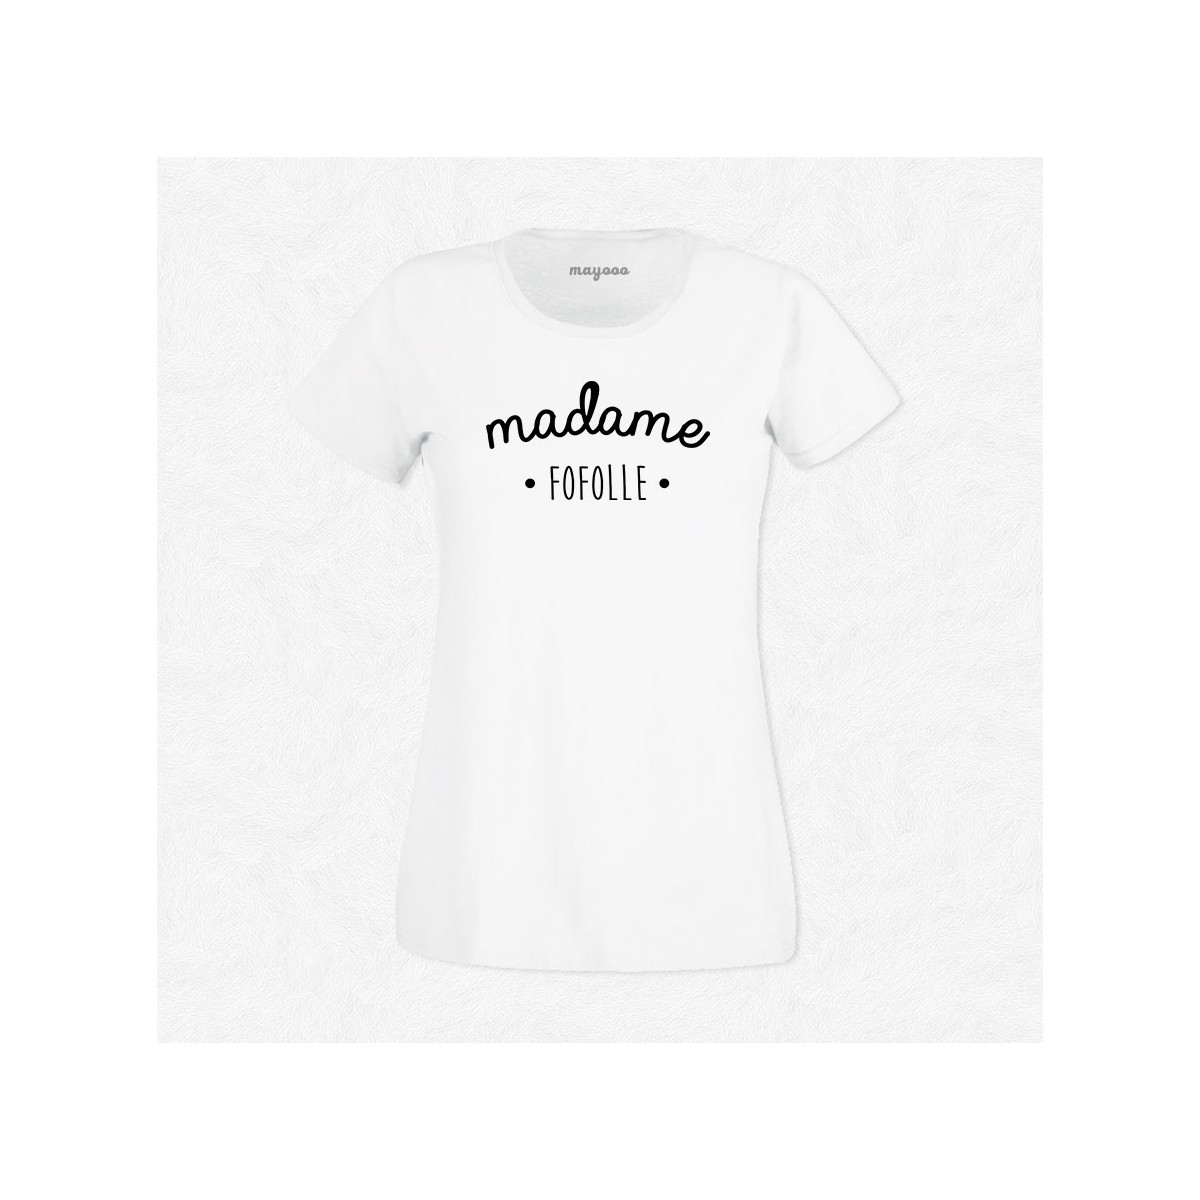 T-shirt Madame Fofolle